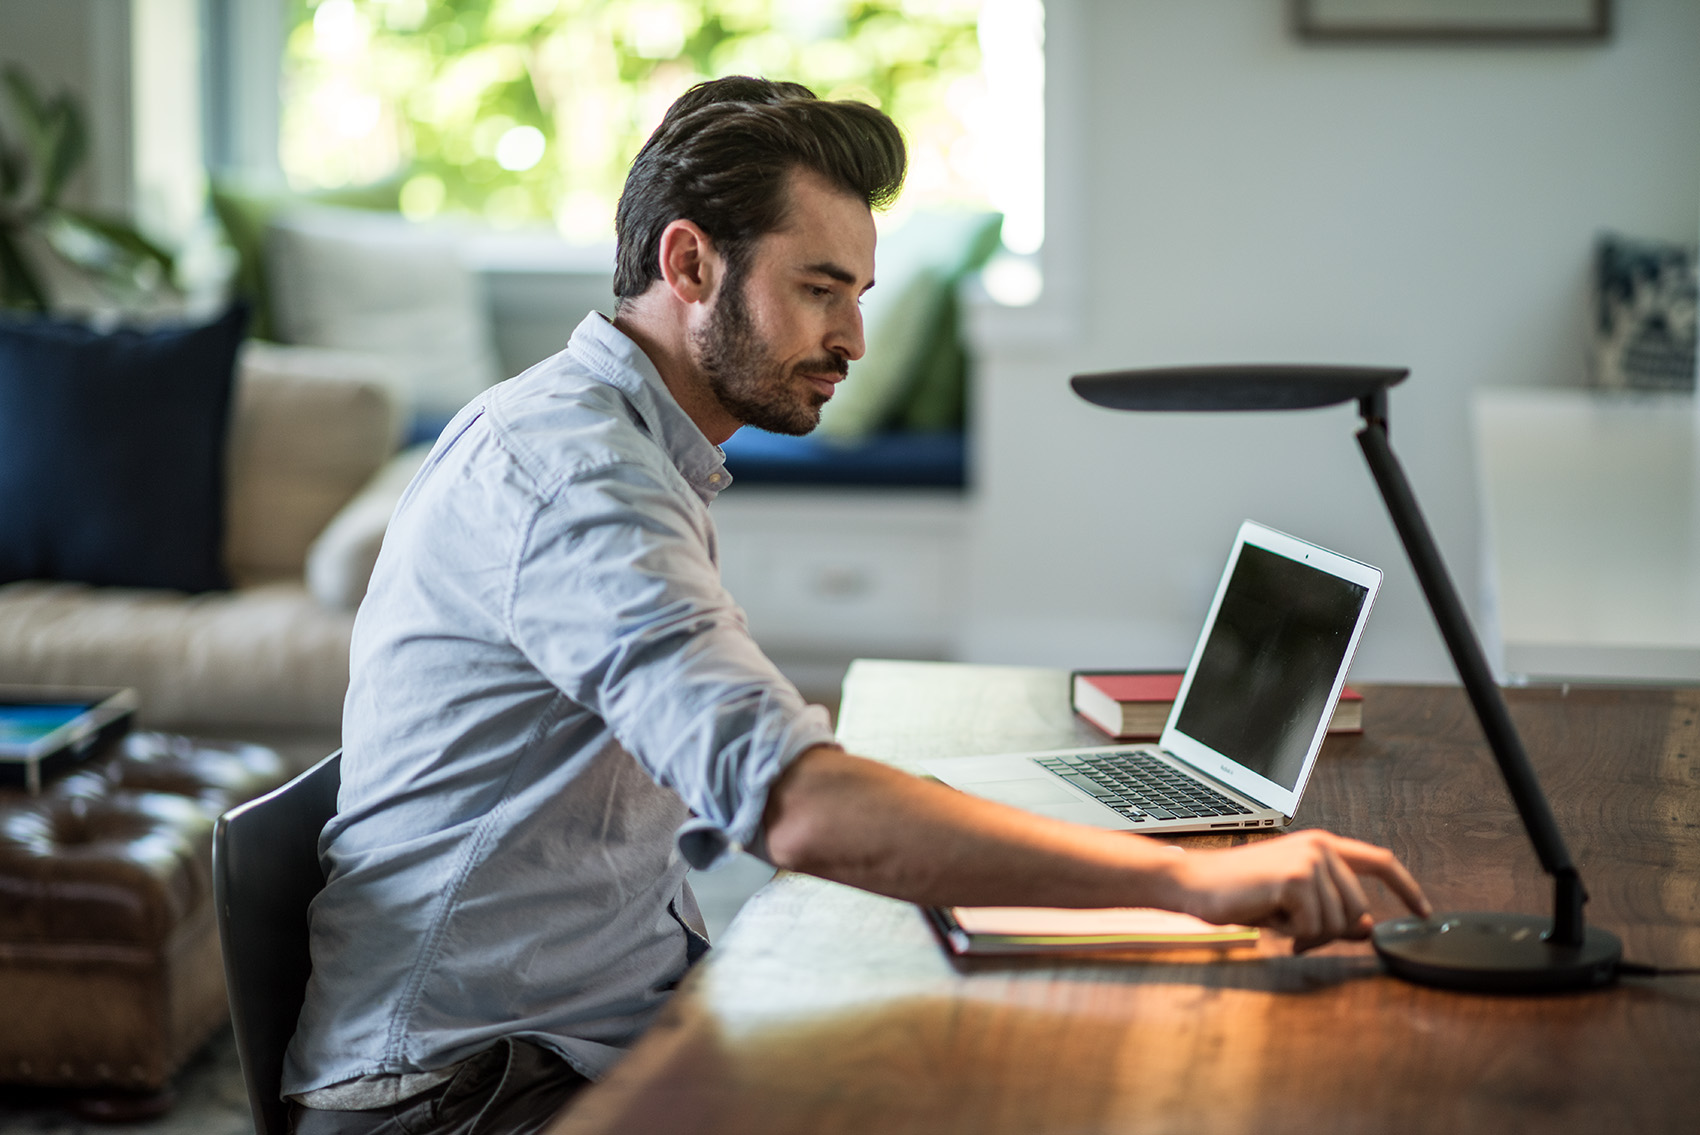 Man turning on a light while working at home